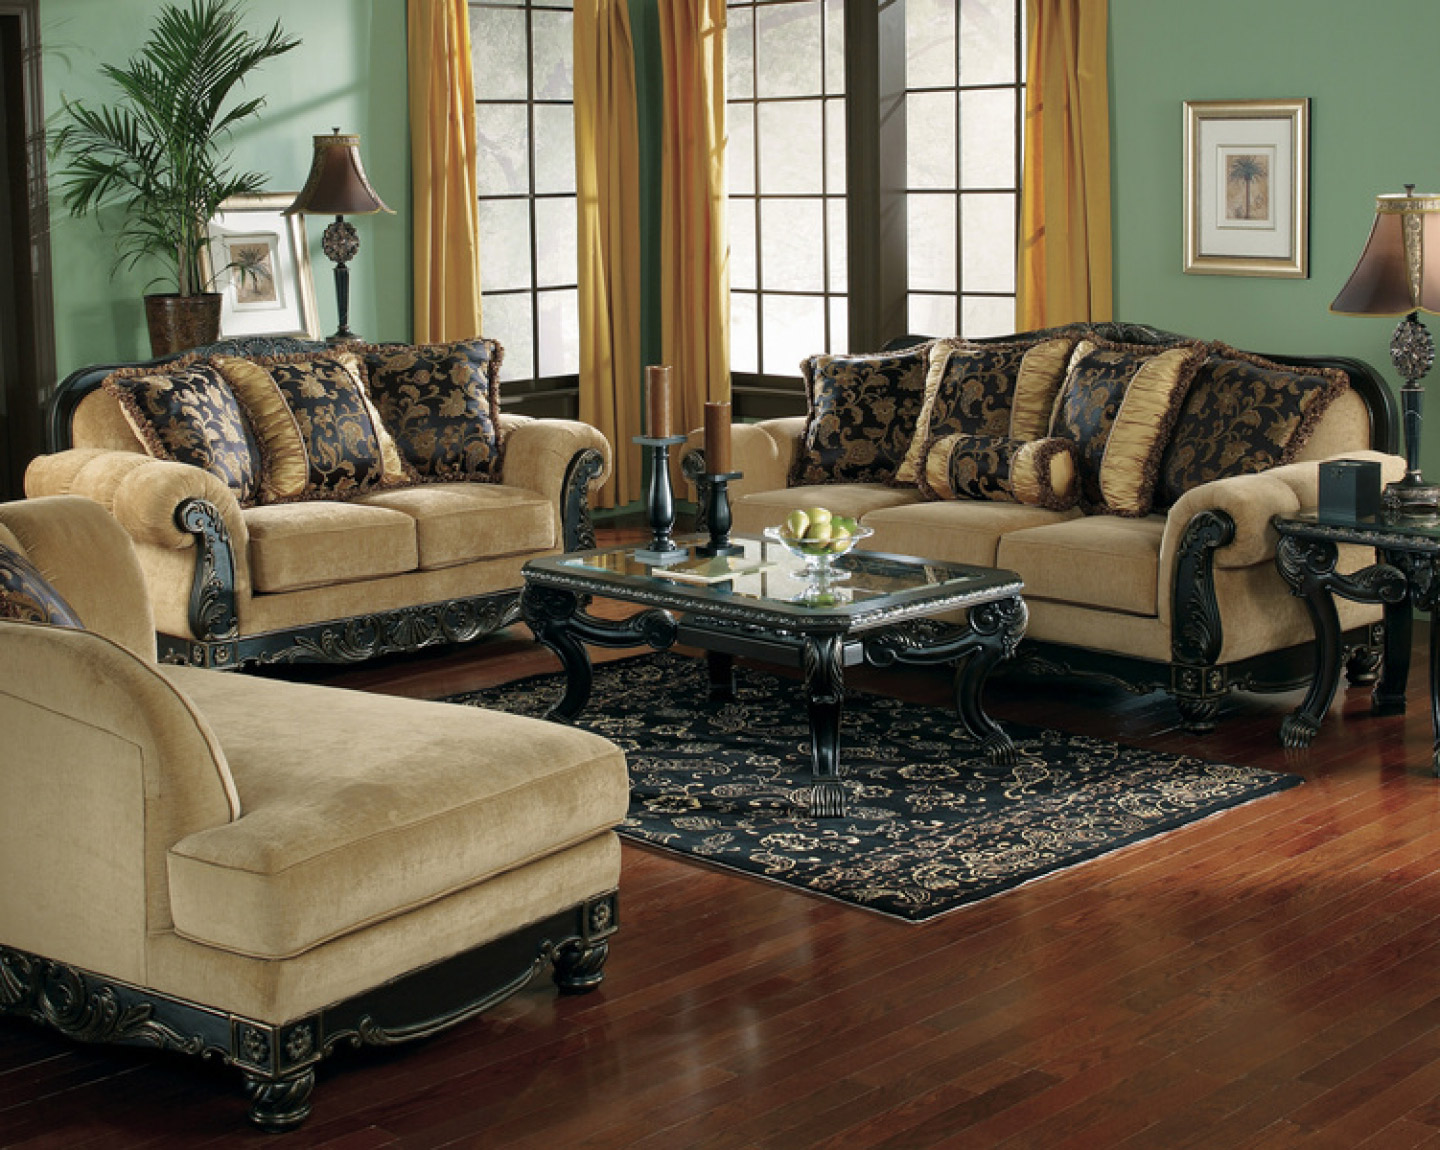 Furniture of america living room collections roy home design Home furniture usa nj